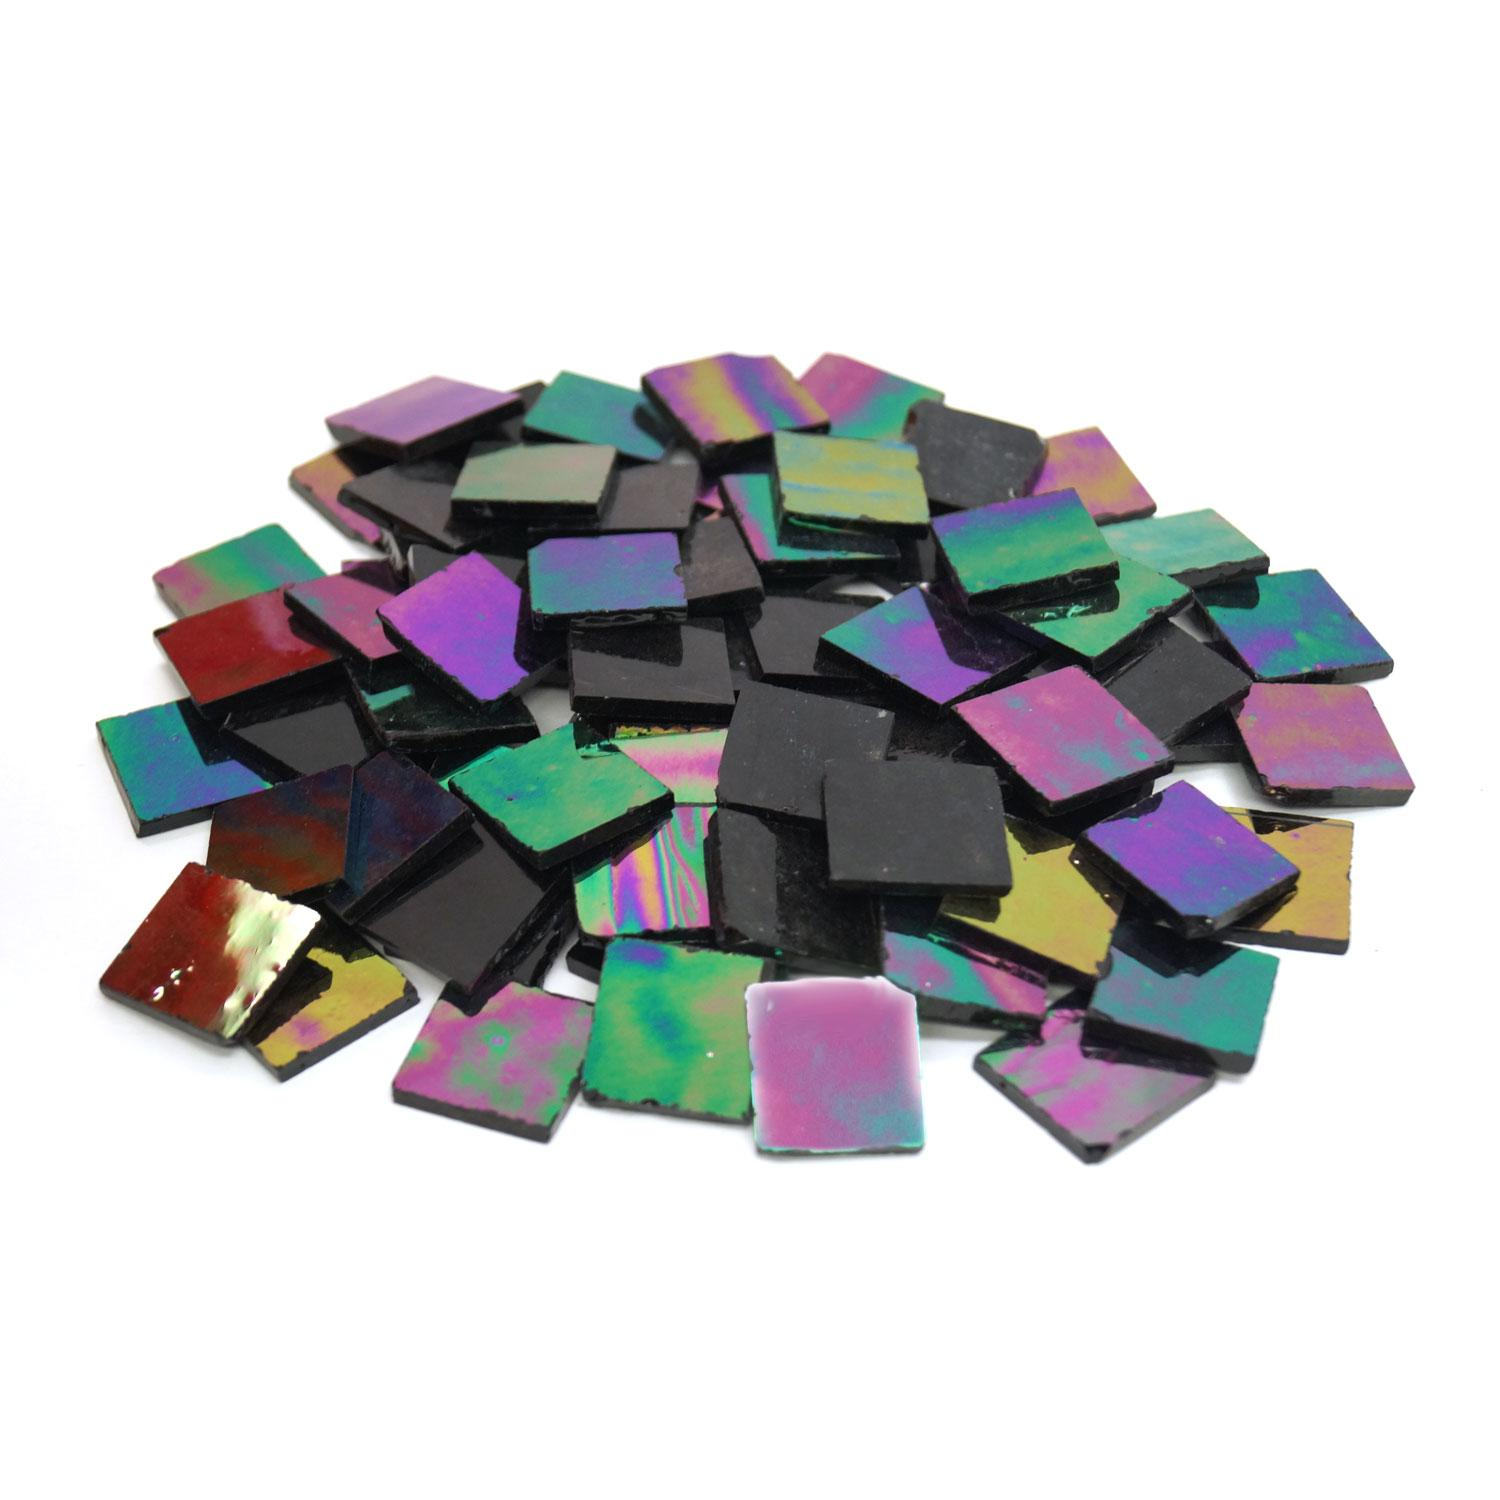 3/4 Black Opaque Iridized Stained Glass Chips - 80 Pieces